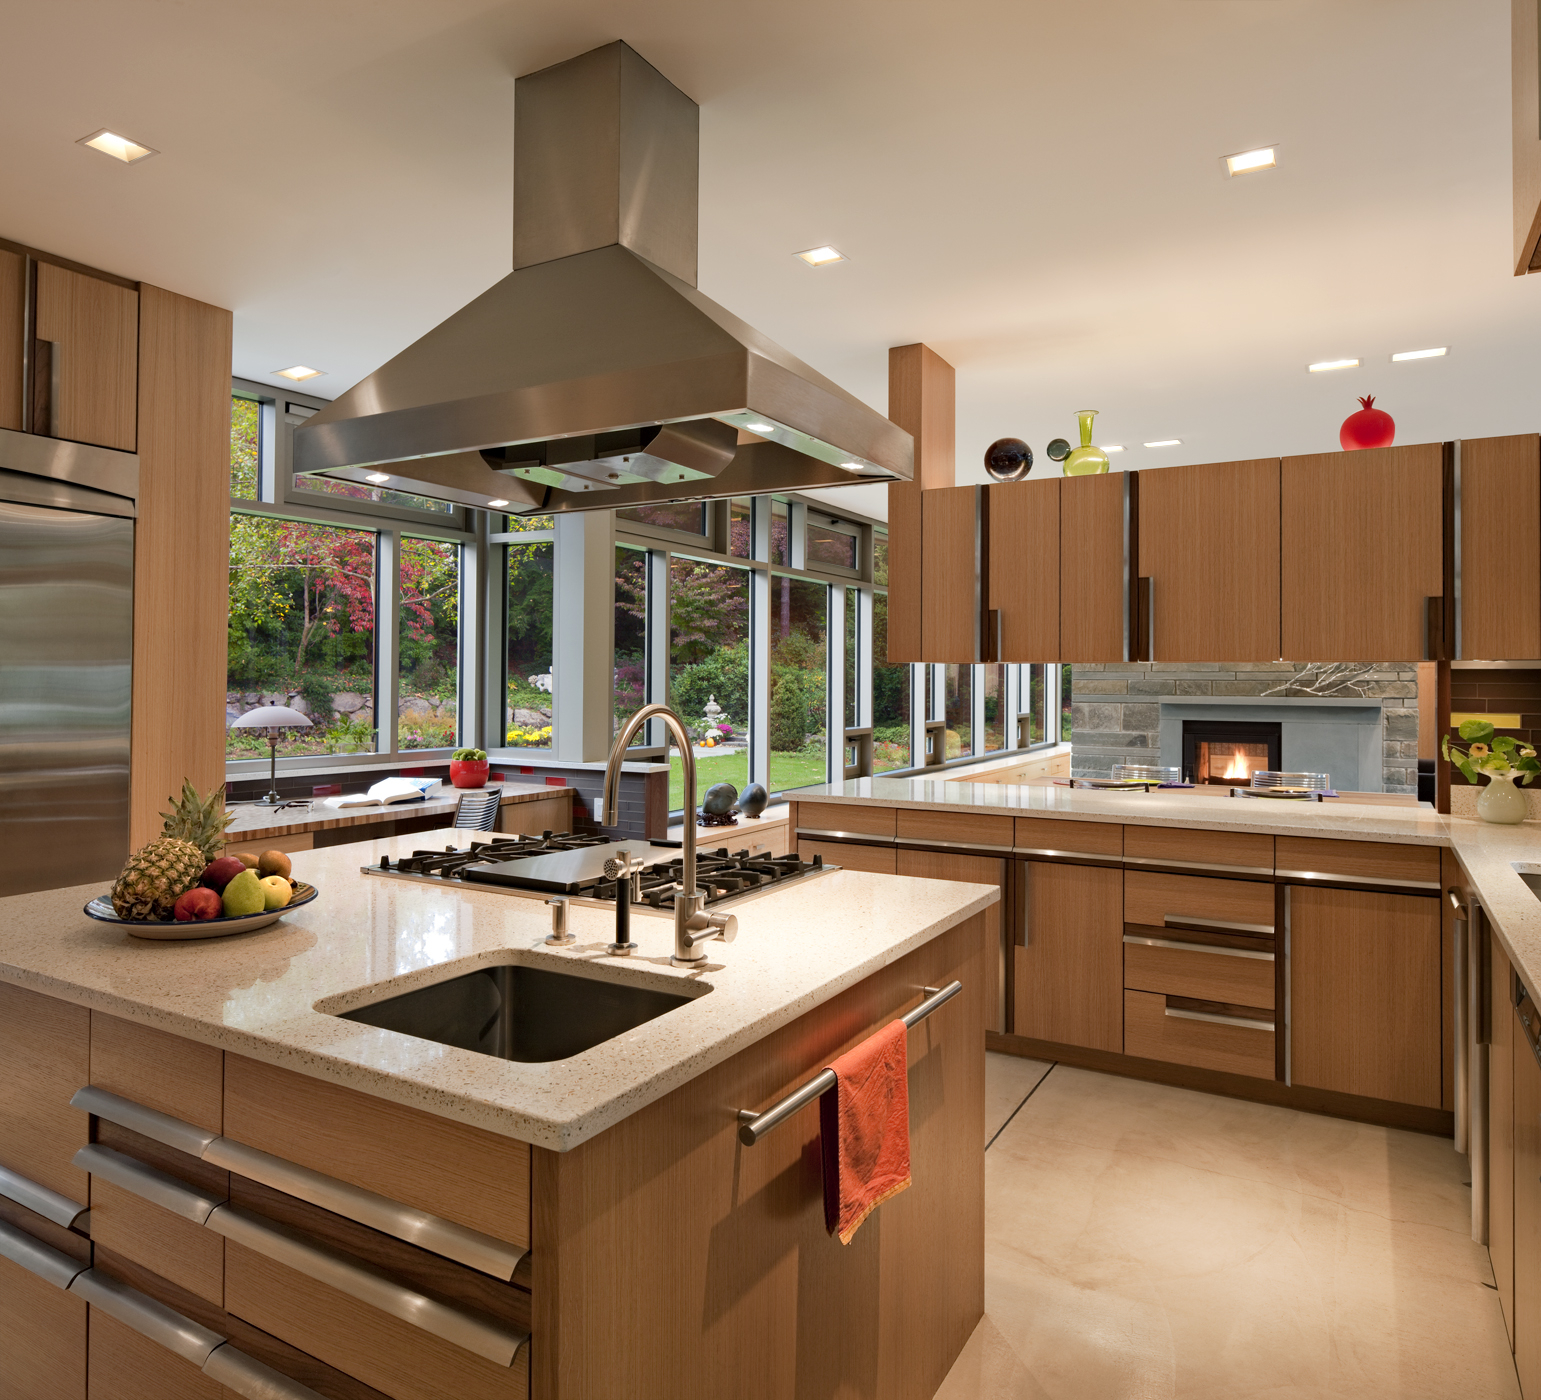 Kitchen featuring Energy Star appliances and natural daylighing,    Floating Peak House